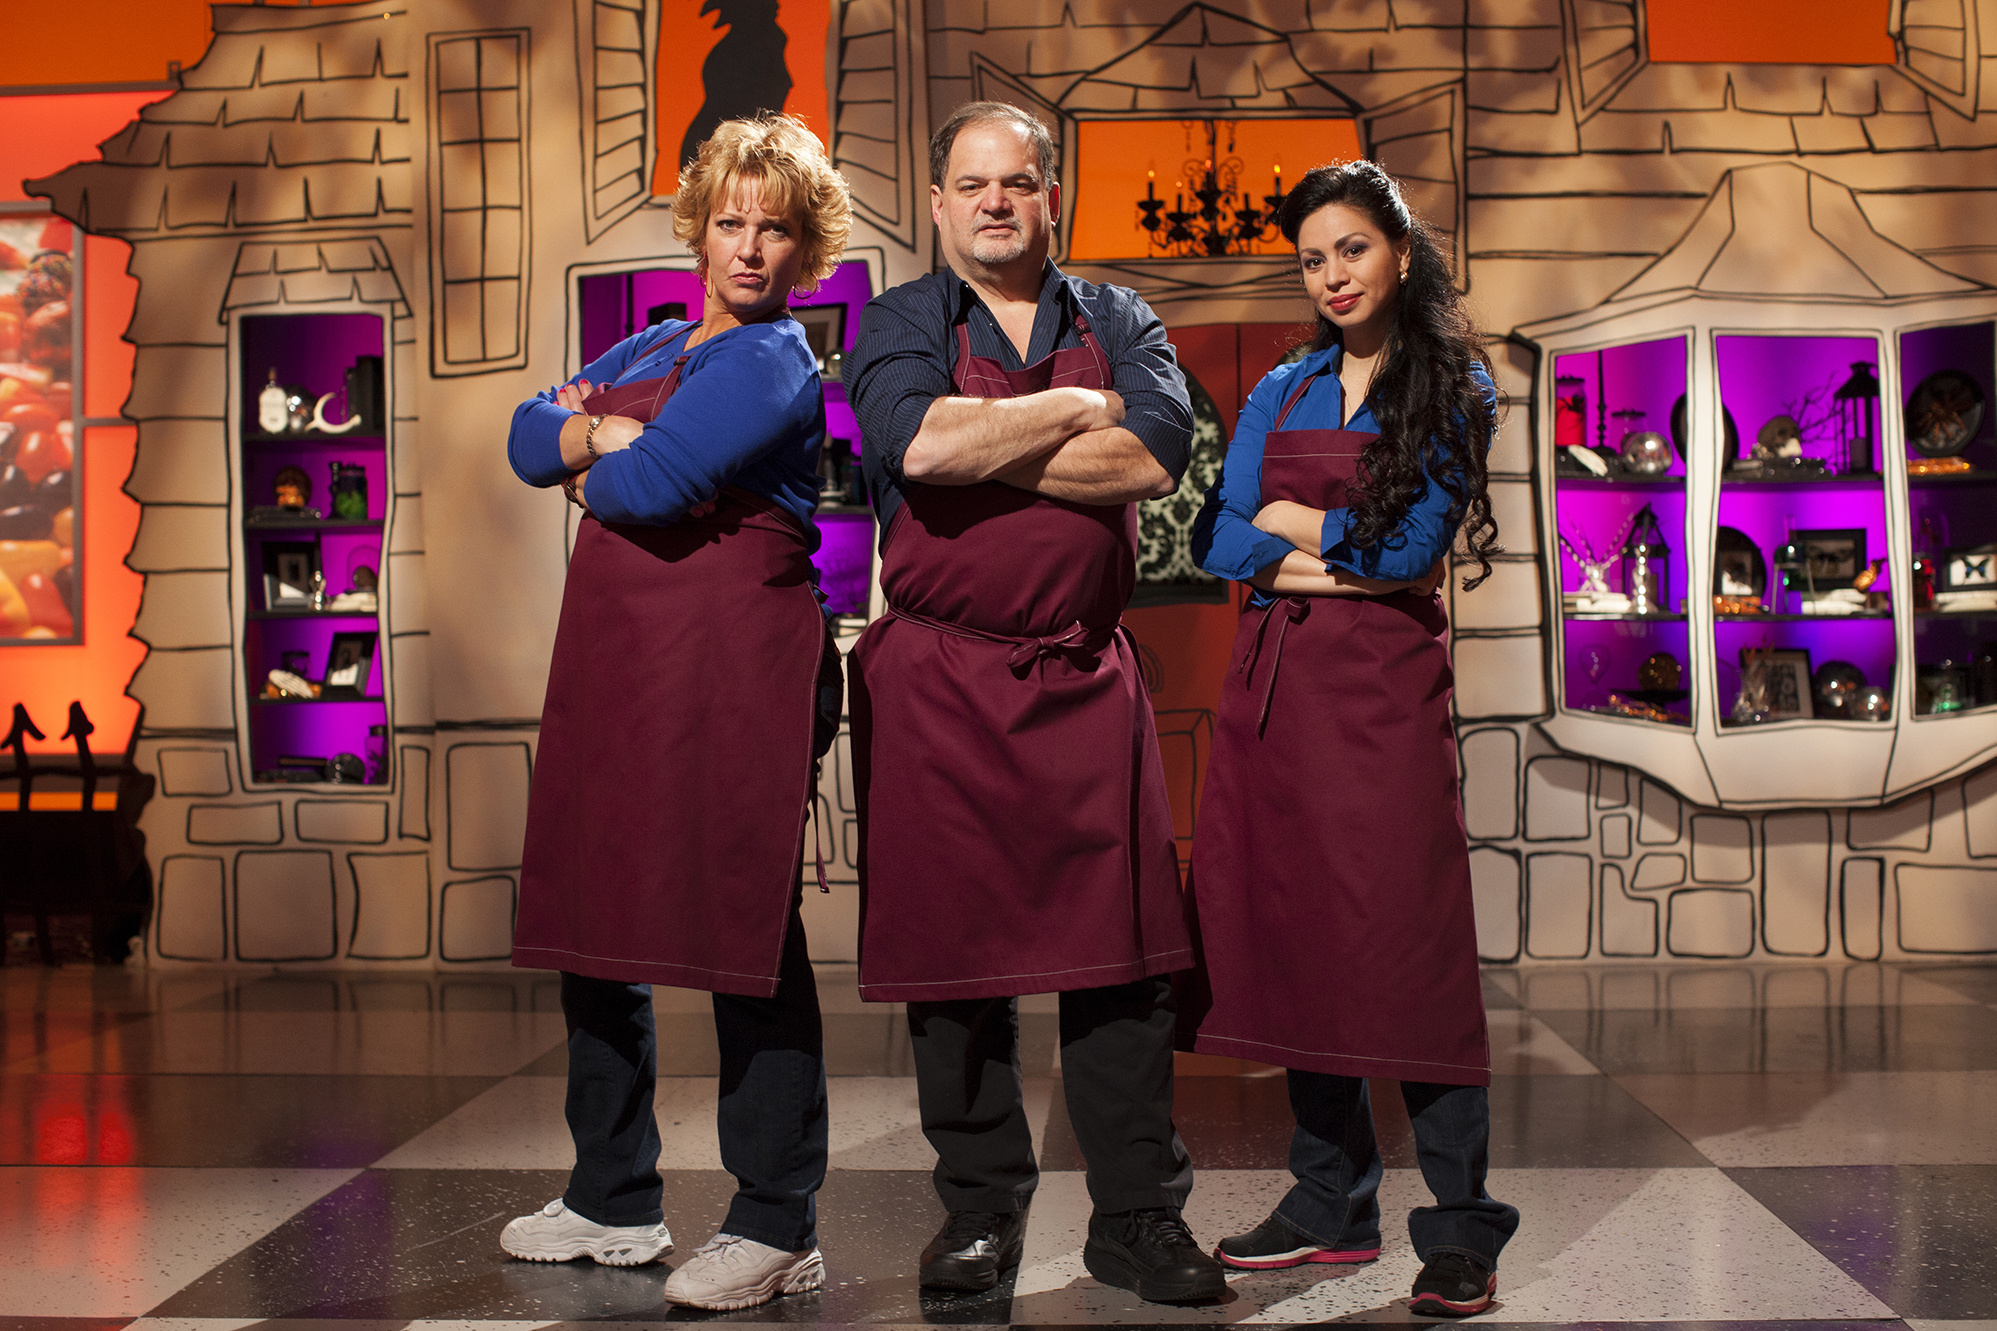 spokane community college culinary arts instructor bob lombardi competes on the season four premiere of food